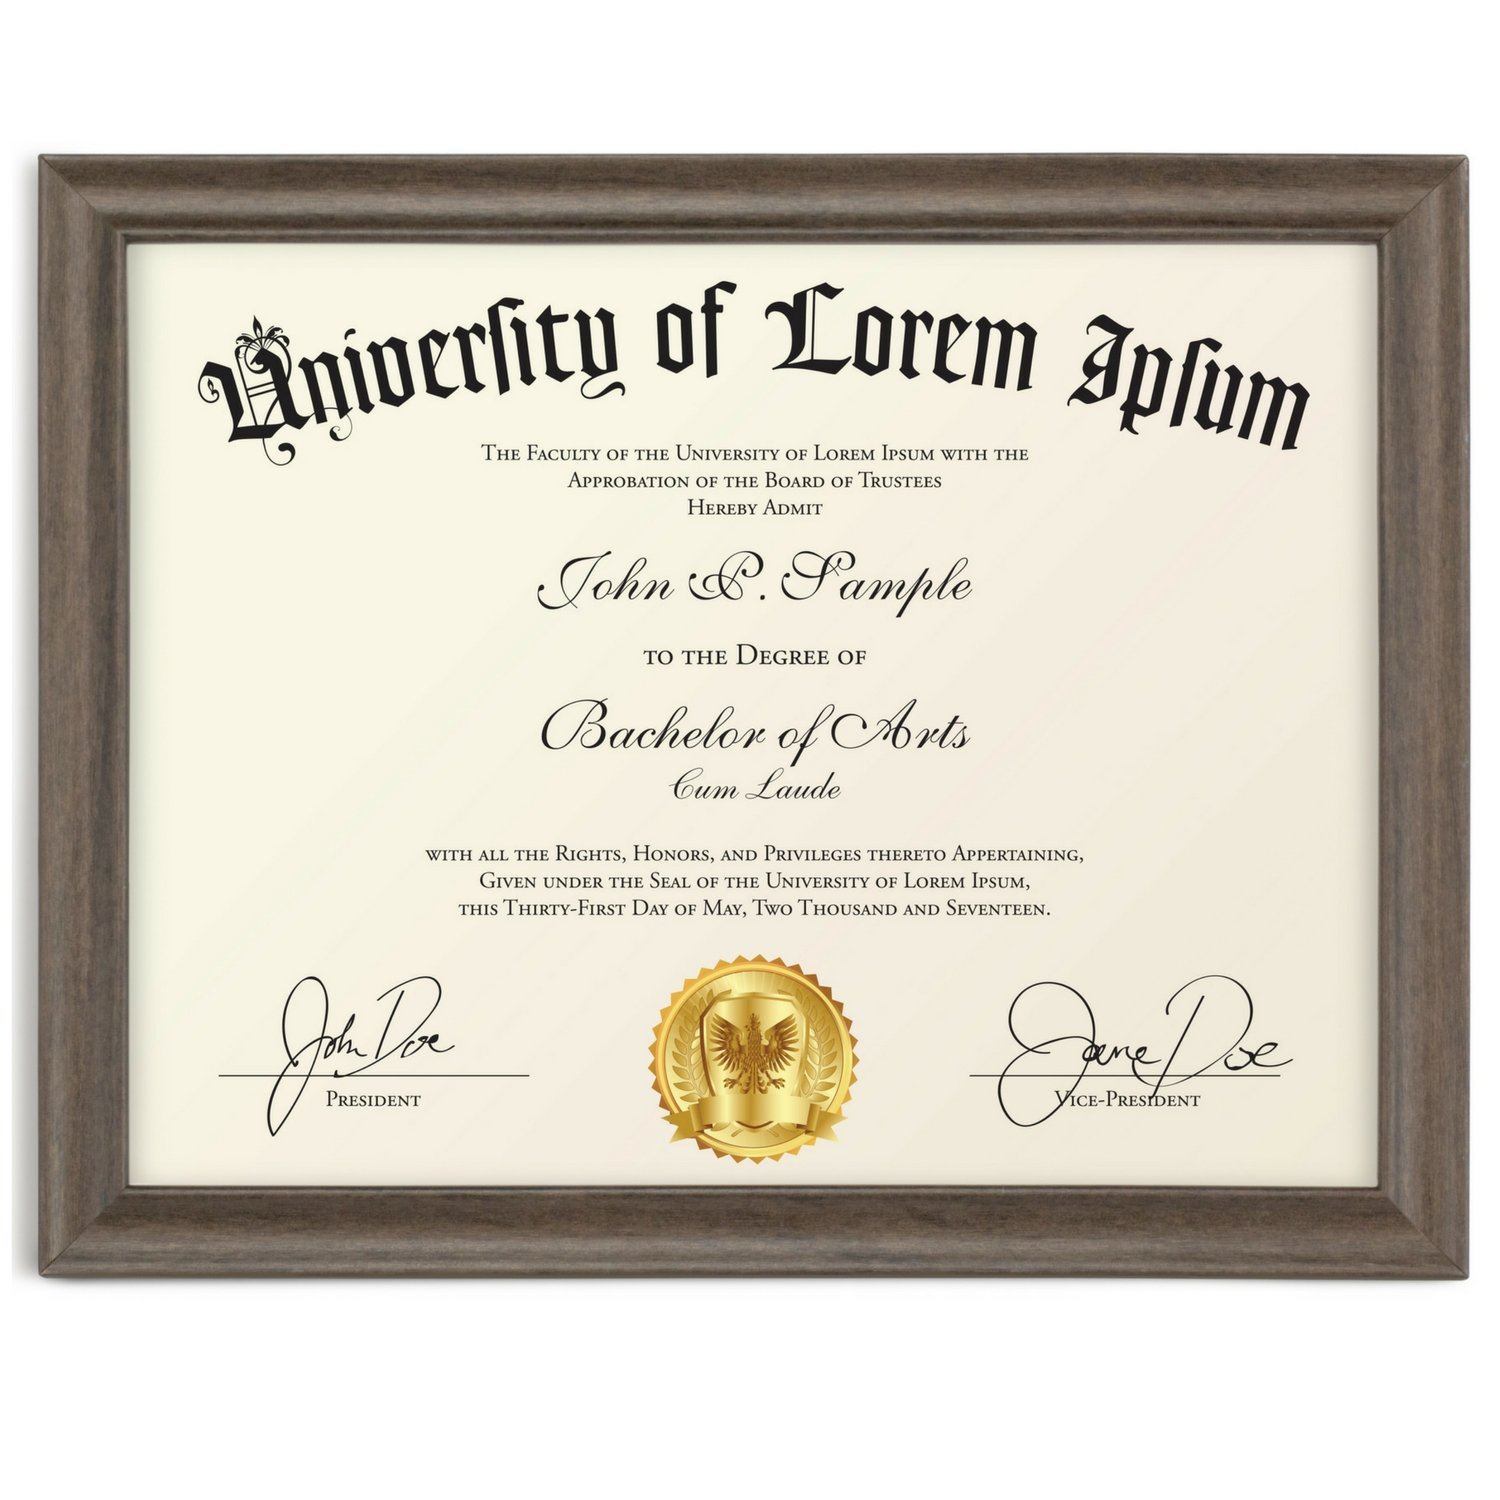 Icona Bay 8.5 by 11 Document Frame (8.5x11, Matte Black) Wood Picture Frame, Wall or Table Top, for Diploma Photo License Certificate, Landscape as 11x8.5 or Portrait, Lakeland Collection